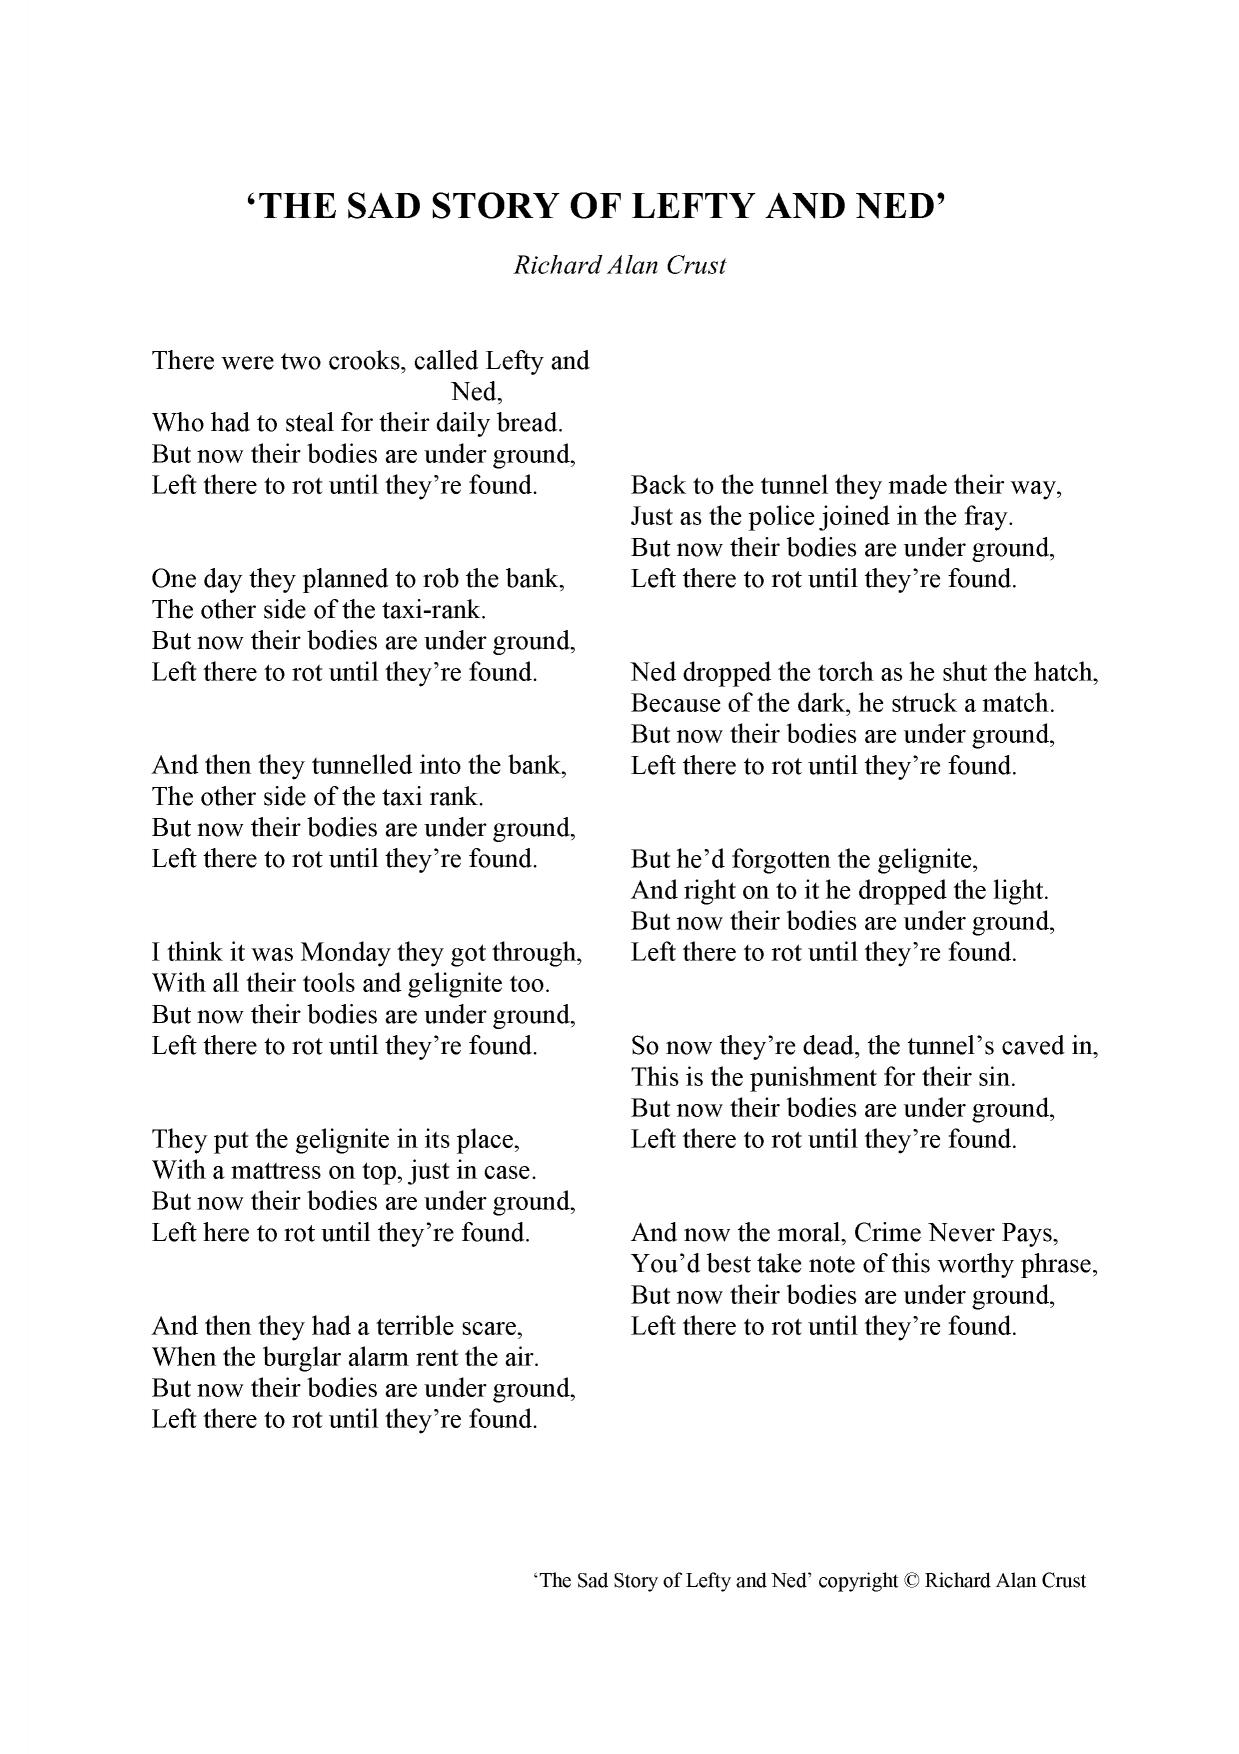 analysis of elements in the poem frankie and johnny Frankie and johnnie were lovers o my gawd how they could love they swore to be true to each other as frankie and johnnie poem by anonymous - poem hunter home.